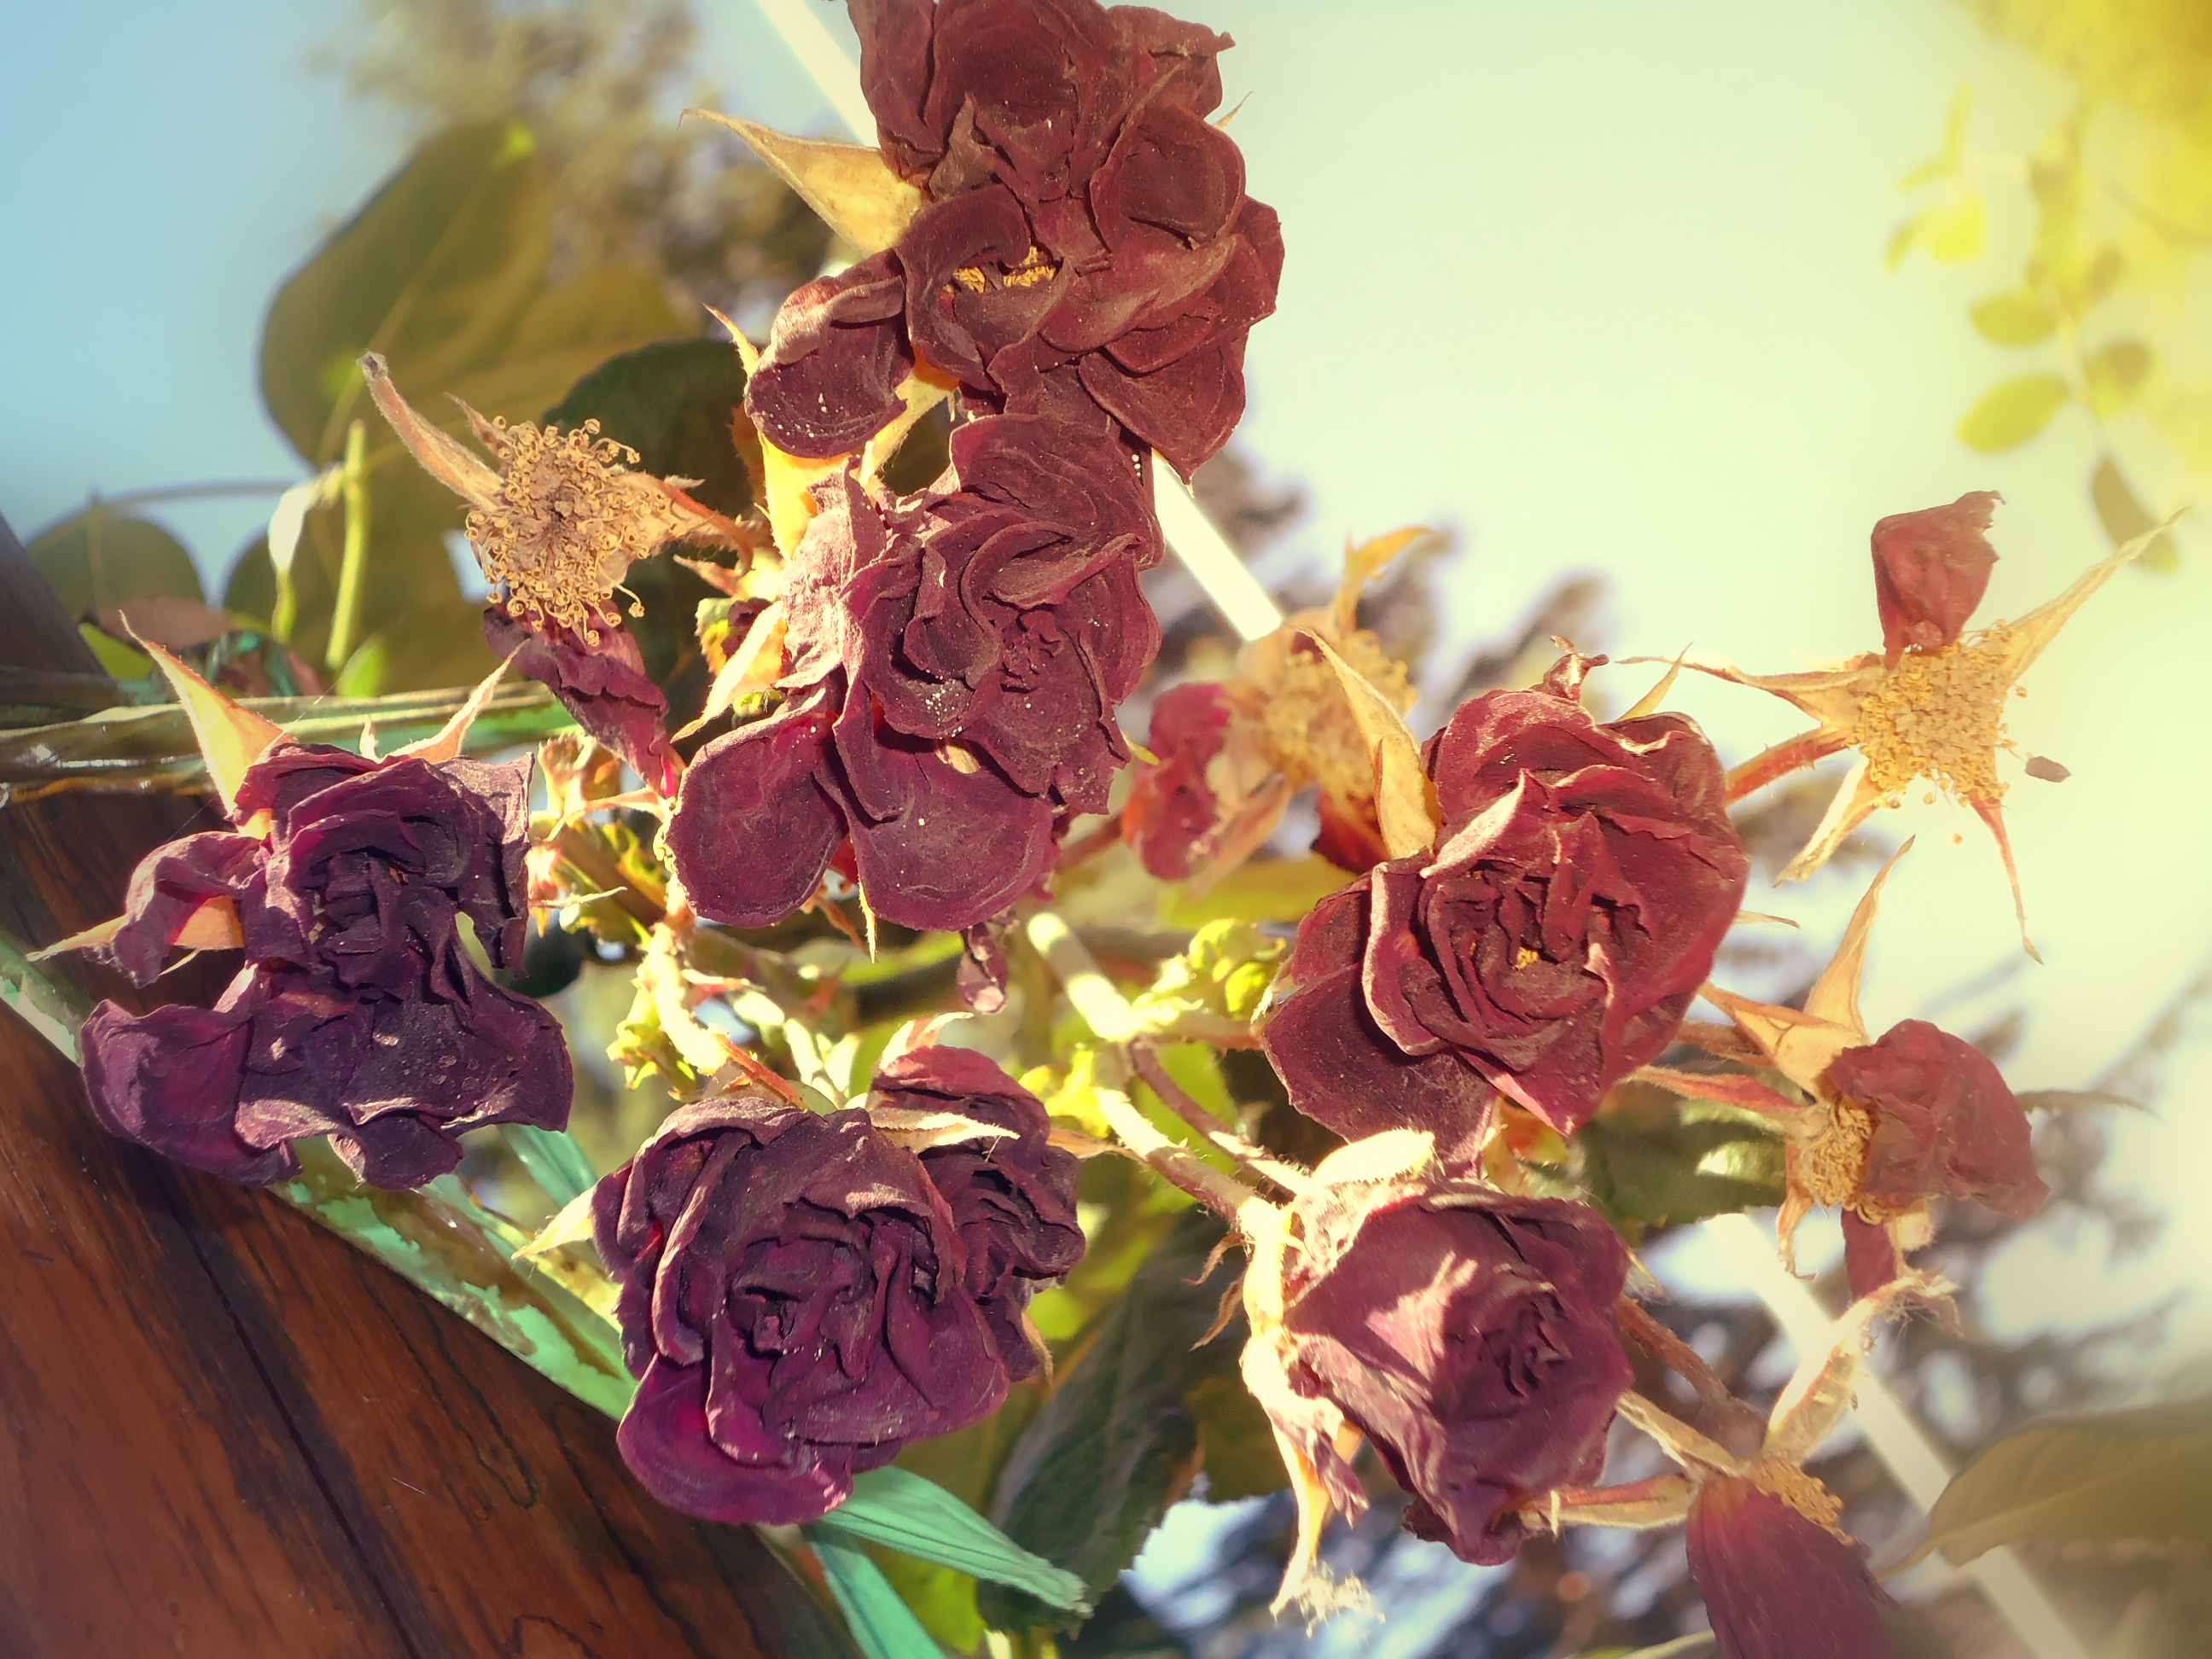 Dead Roses By Mirix10